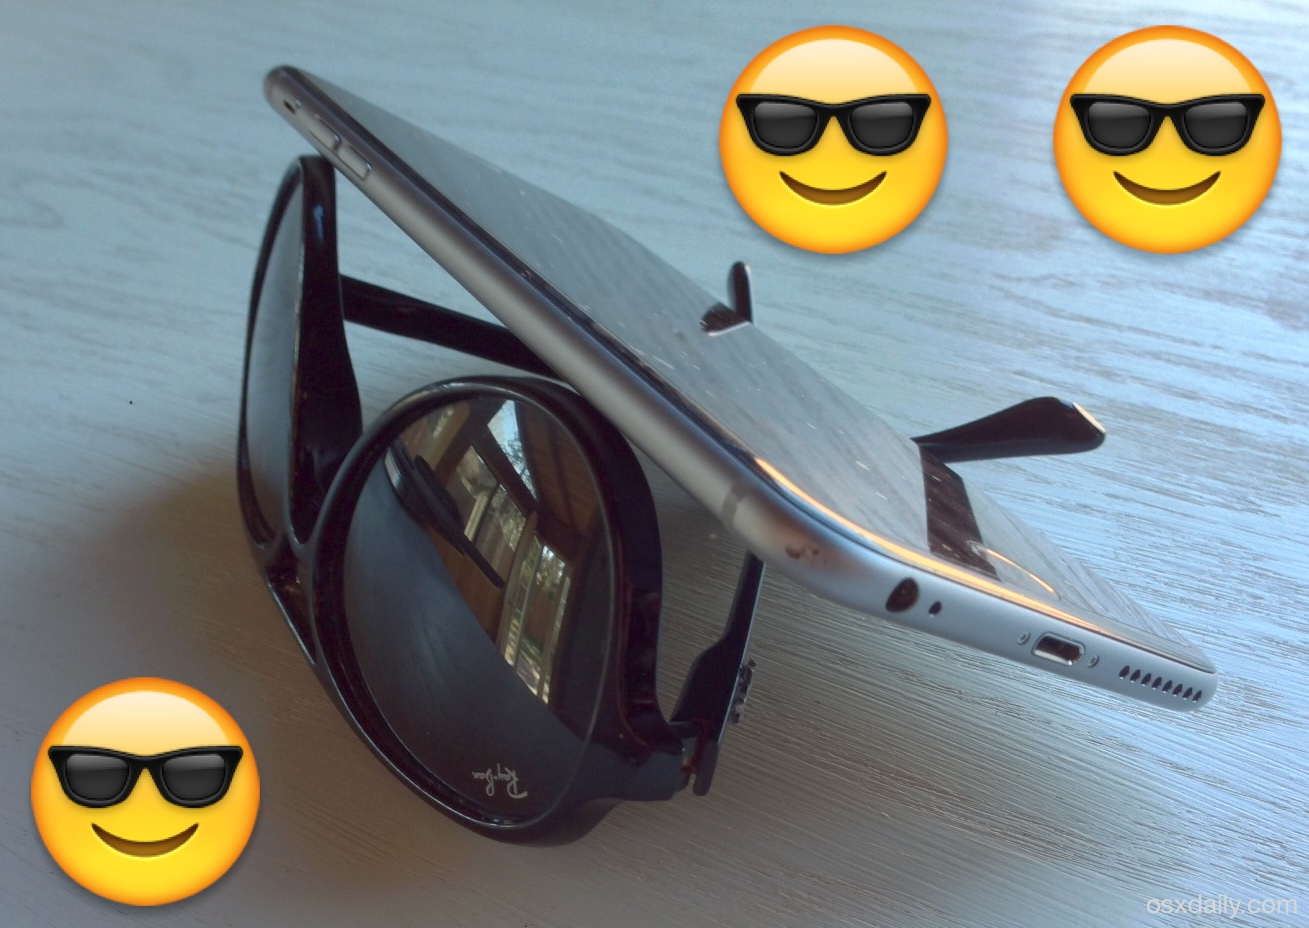 An instant iPhone stand with sunglasses, wow